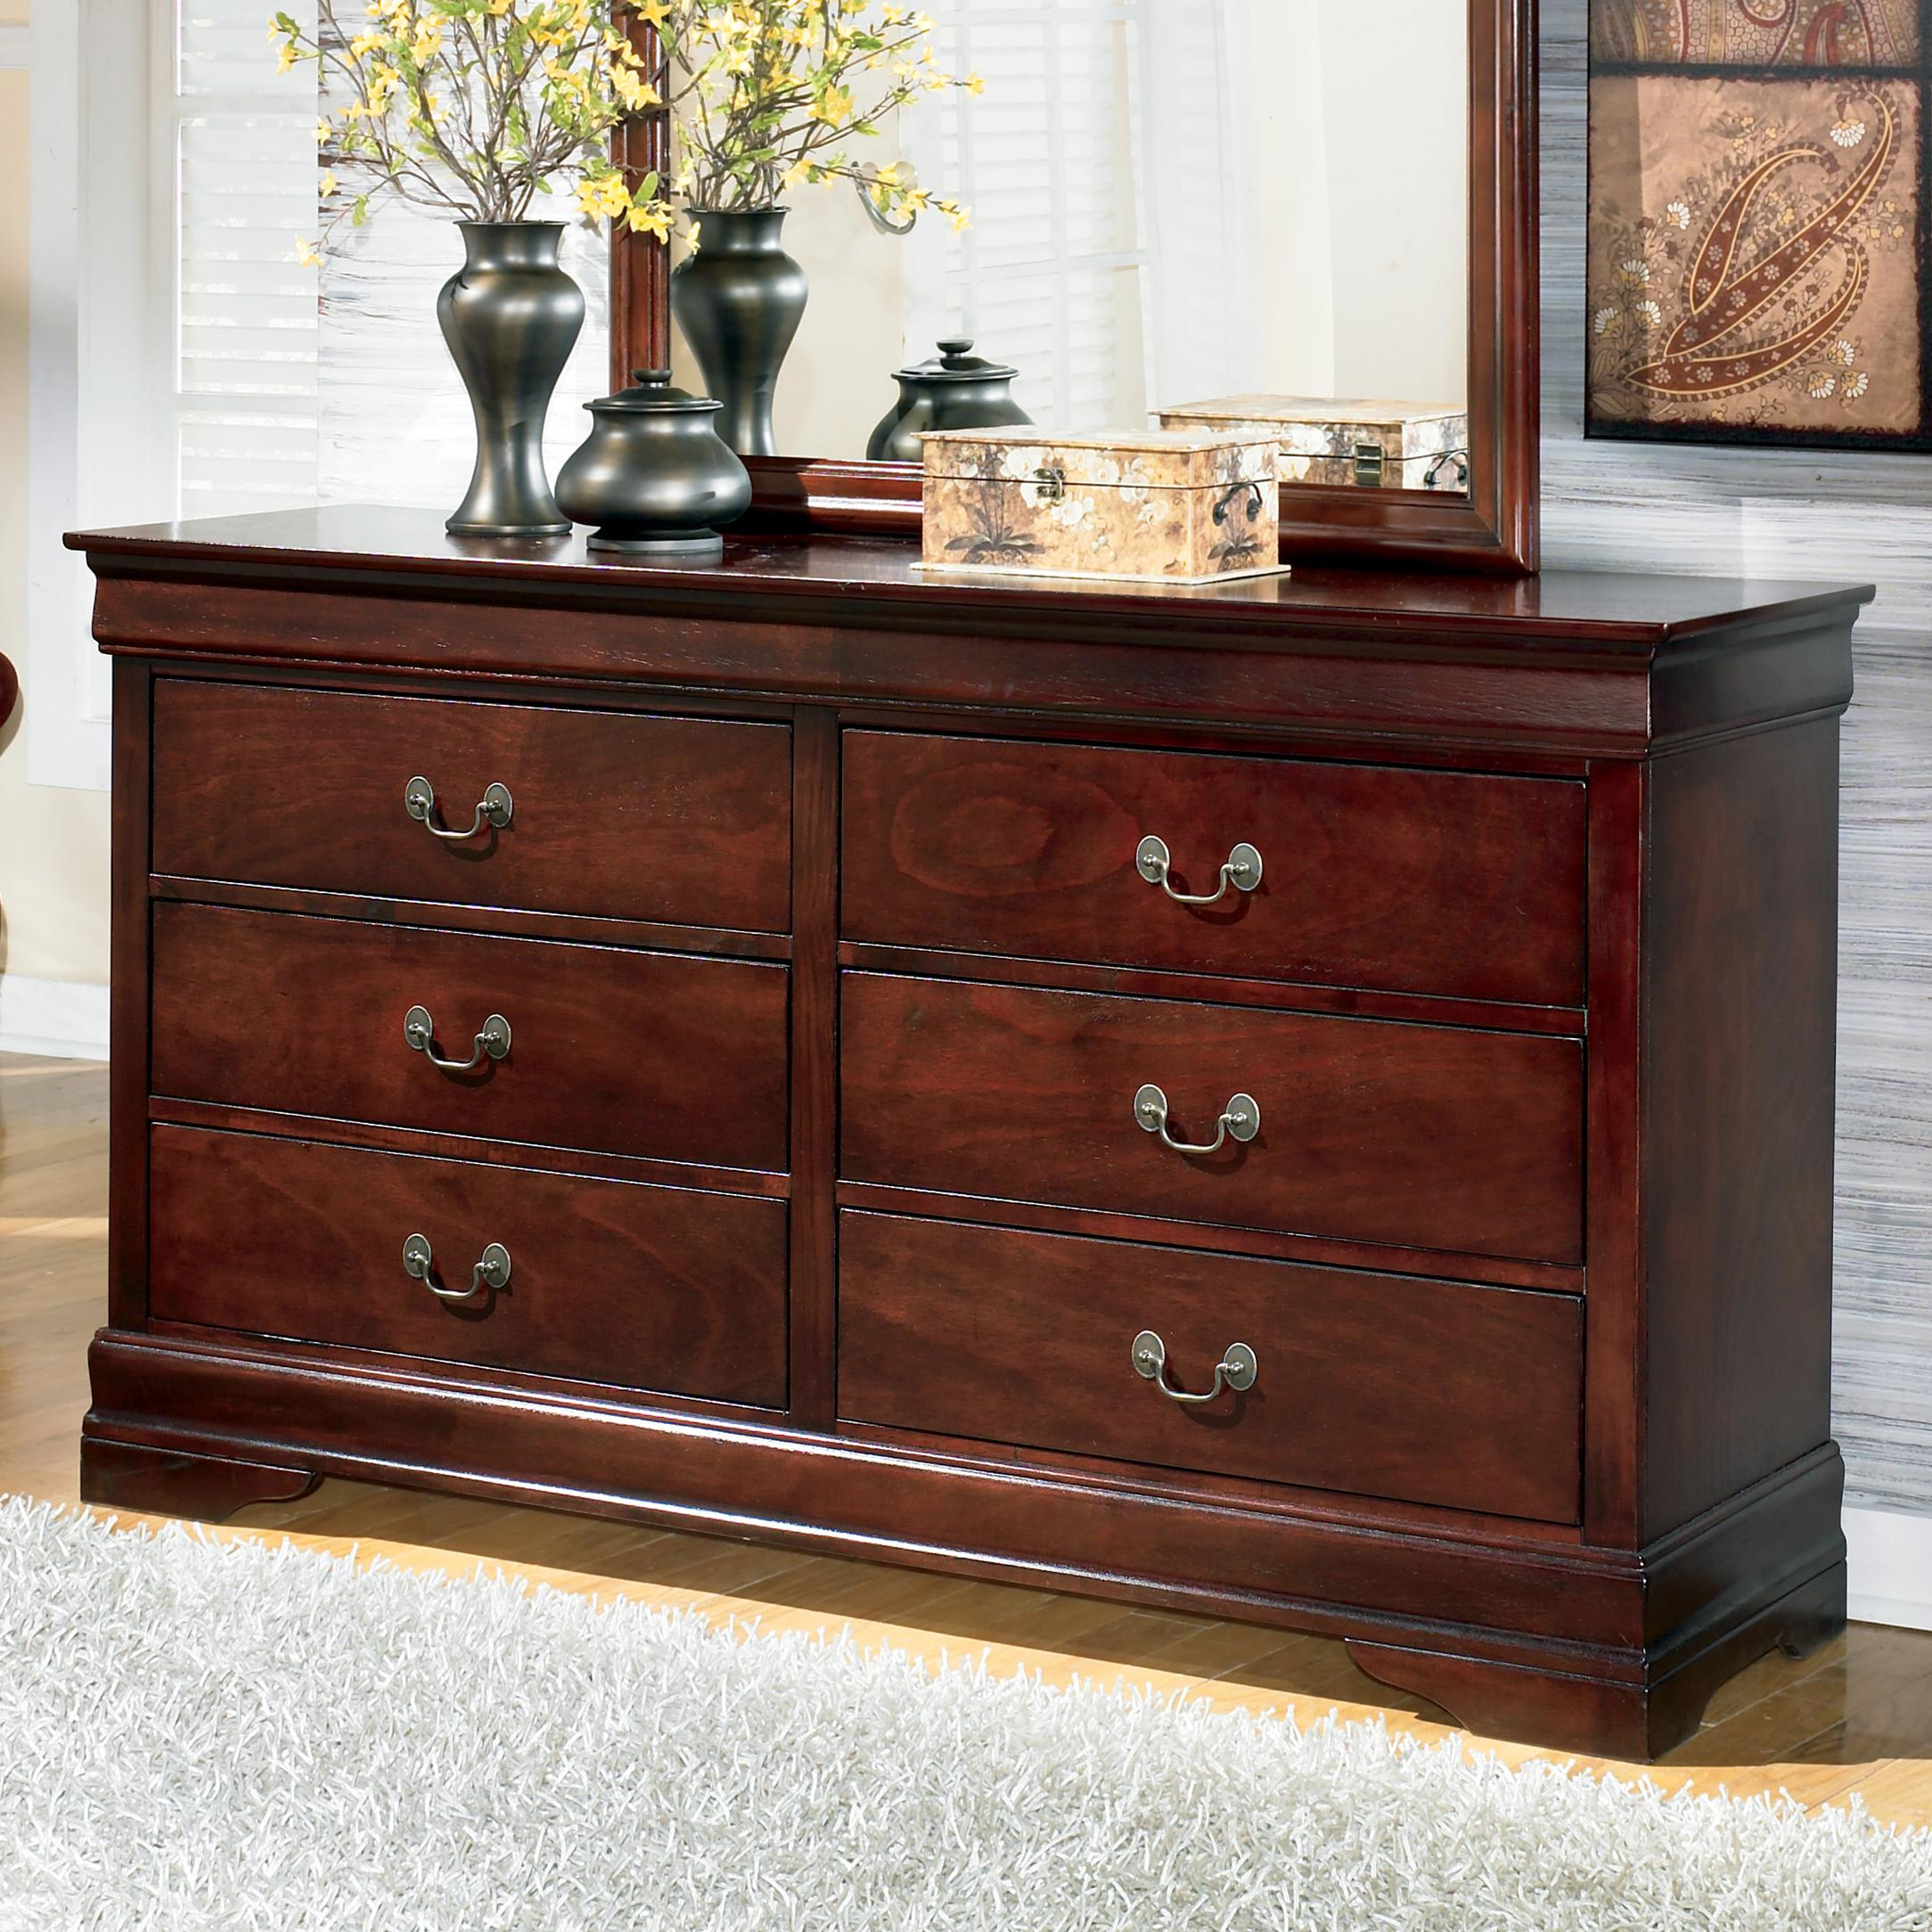 By millie fender 21 february 2020 samsung is bringing some steam to the bedroom this april. Signature Design By Ashley Alisdair Traditional Dresser With 6 Drawers Wayside Furniture Dressers